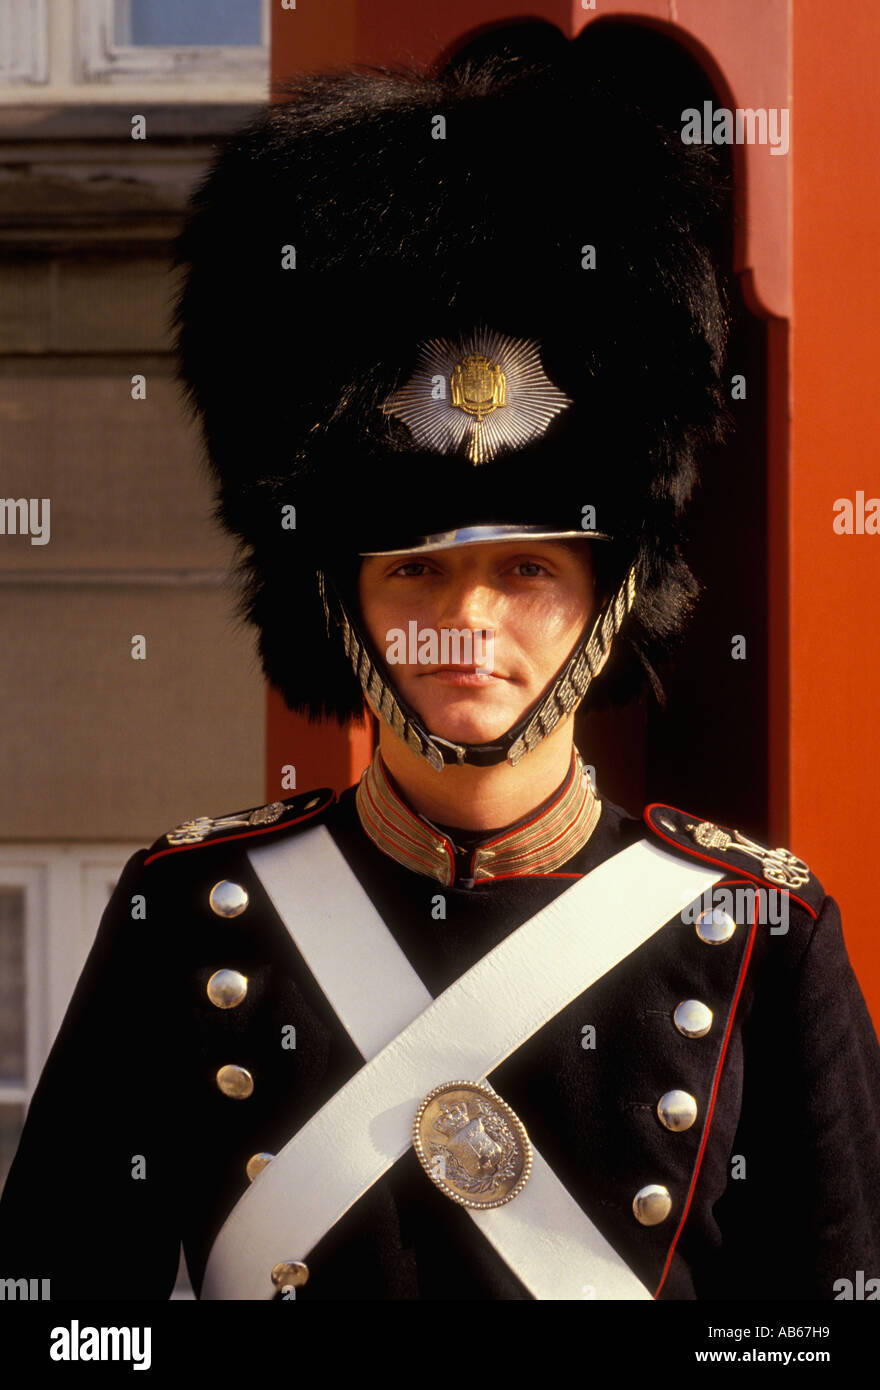 Danish Royal Guard, standing on guard, on guard, sentry, wearing bear fur hat, Amalienborg Palace Copenhagen Denmark Europe - Stock Image